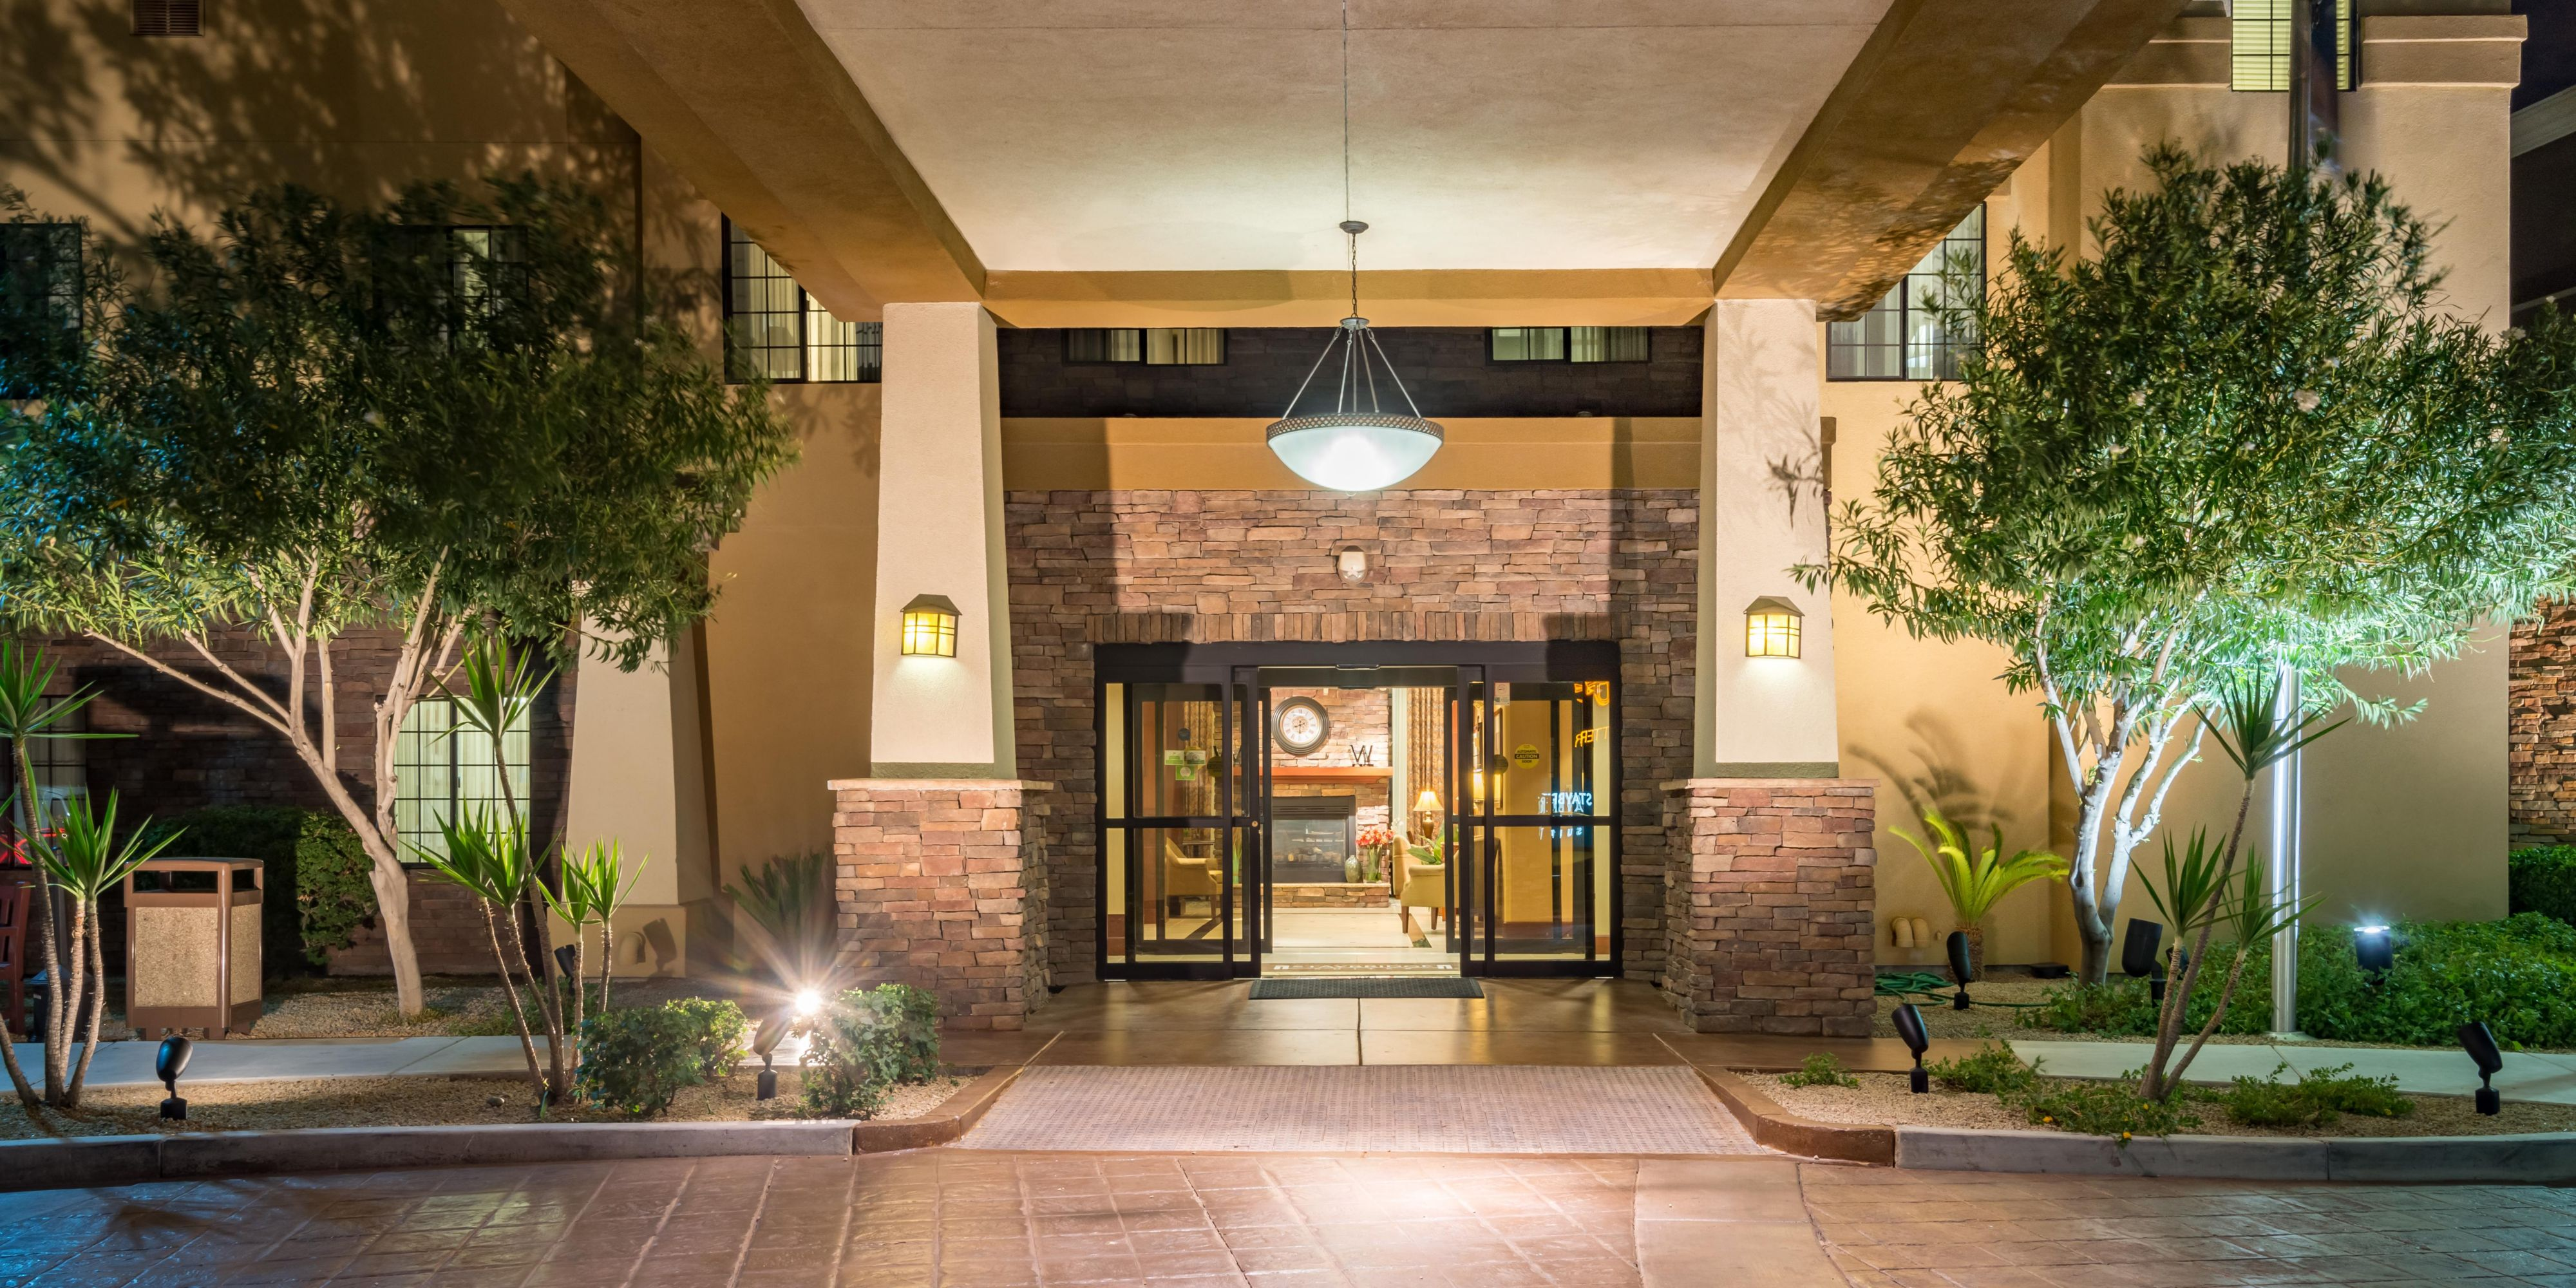 Staybridge Suites Phoenix - Glendale Sports Dist image 0